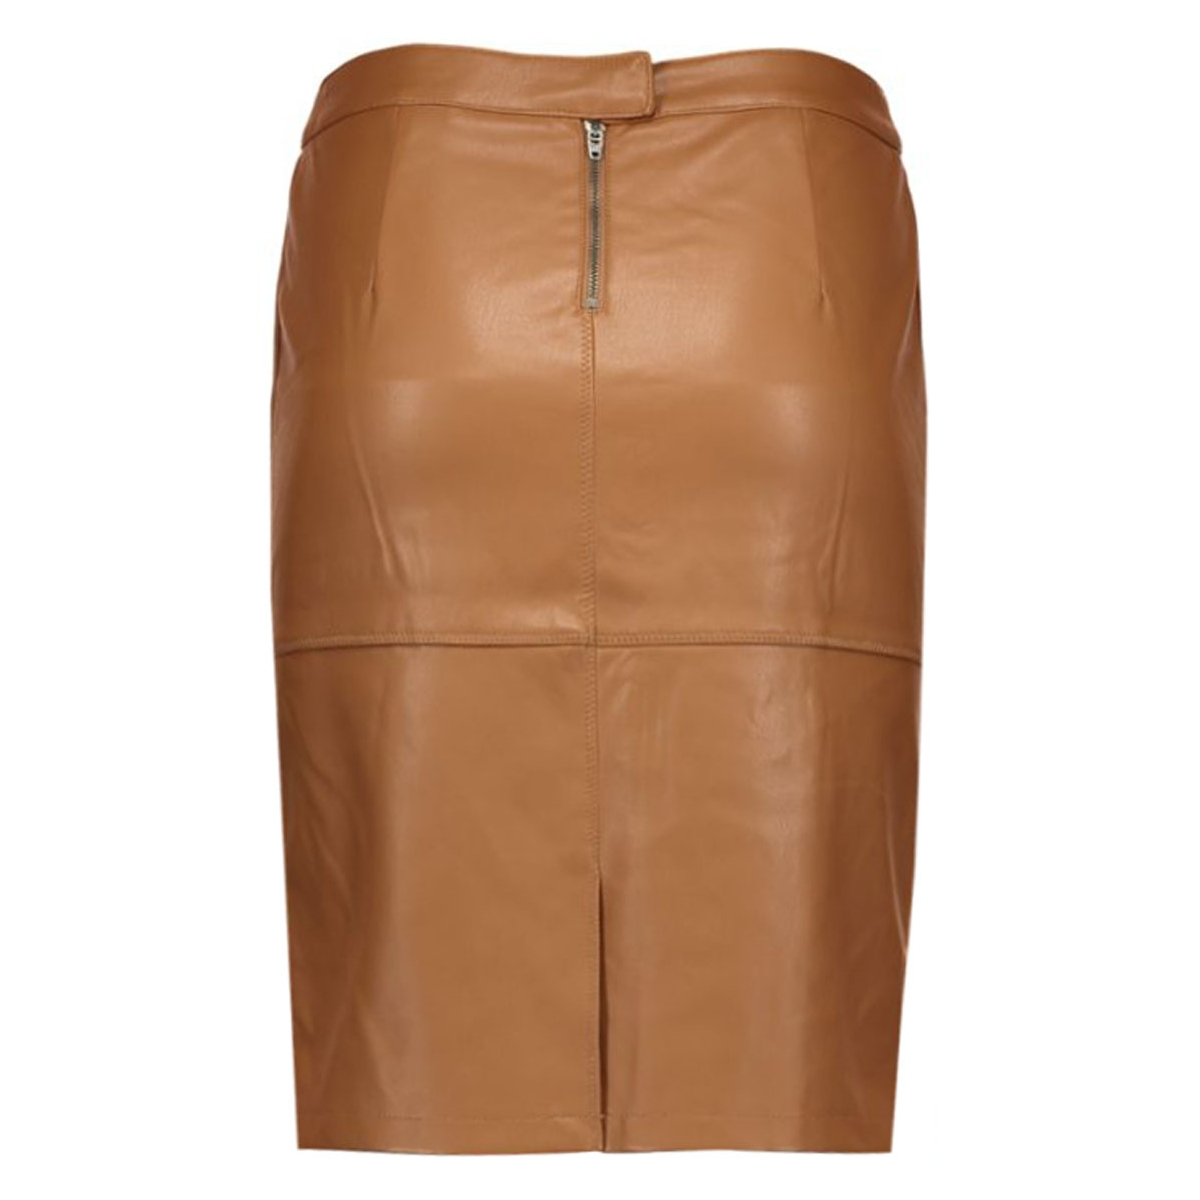 vipen new skirt-noos 14033417 vila rok oak brown